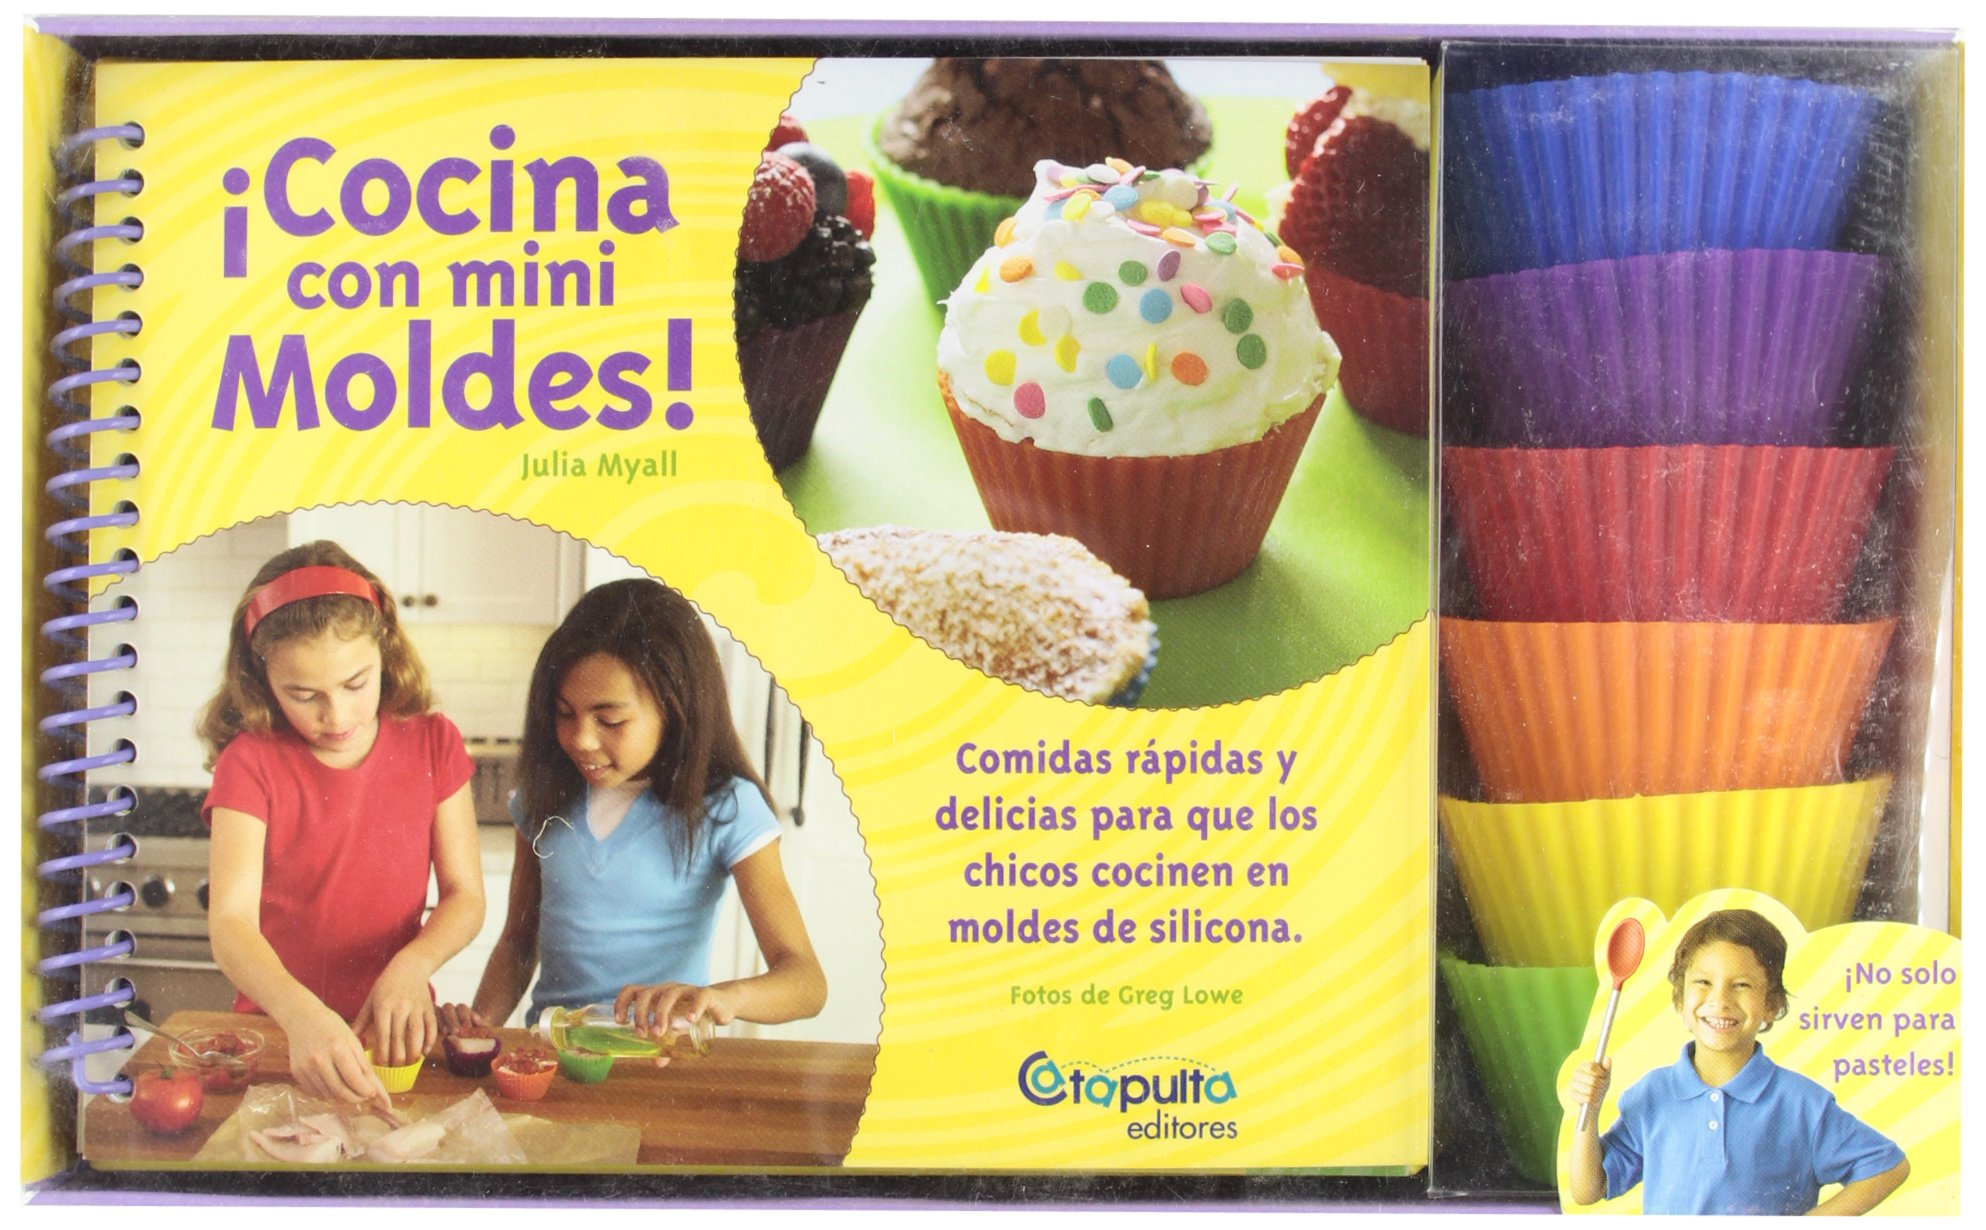 COCINA CON MINI MOLDES (Spanish Edition): v.v.a.a.: 9789876370592: Amazon.com: Books